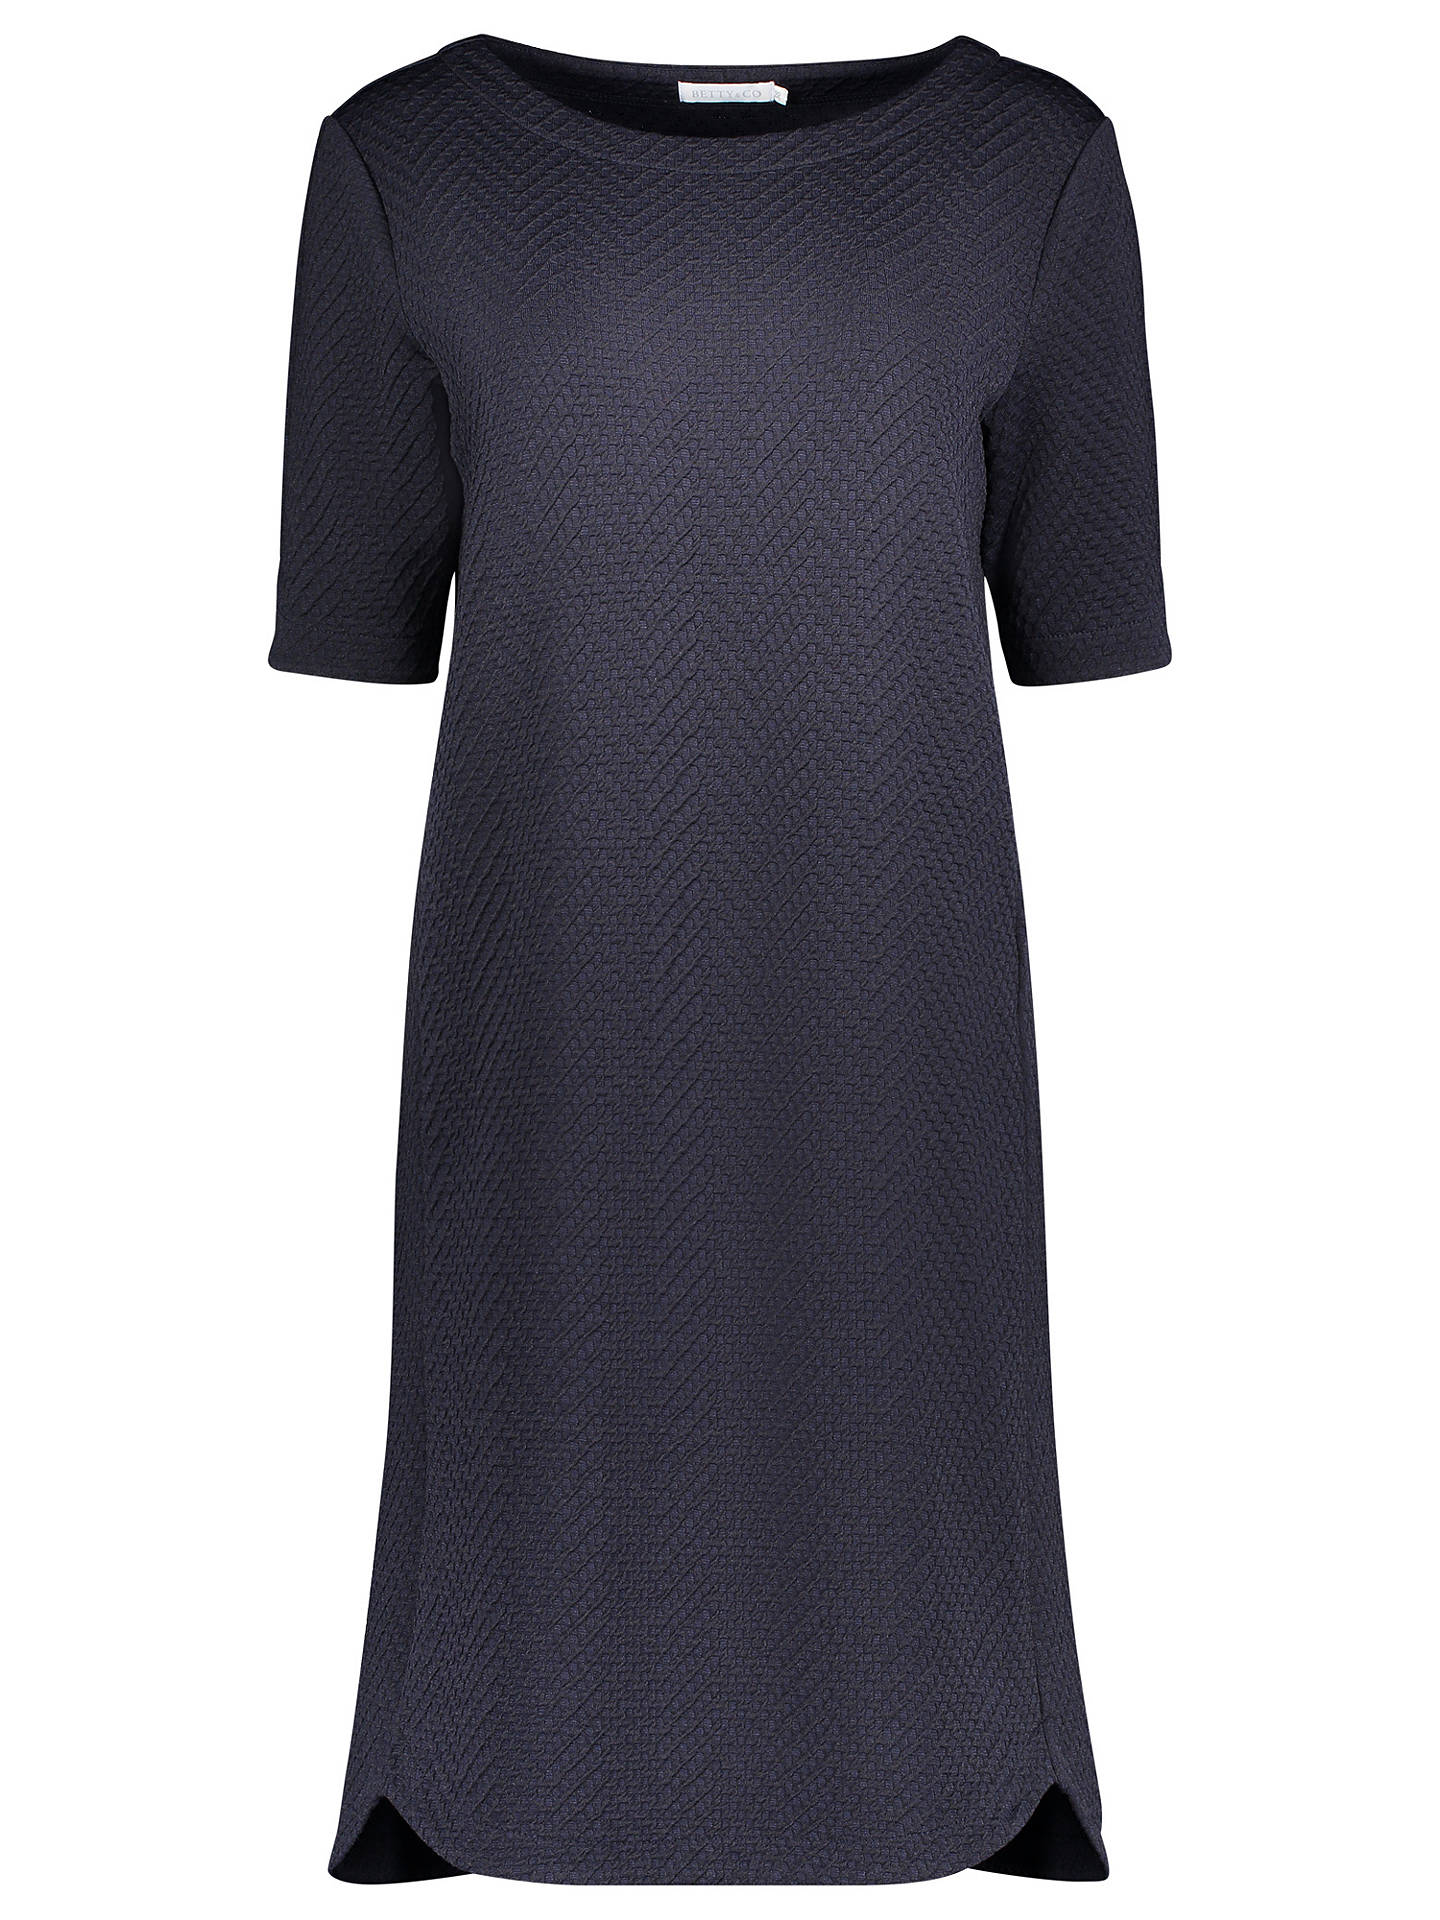 Buy Betty & Co. Textured Jersey Dress, Night Sky, 10 Online at johnlewis.com